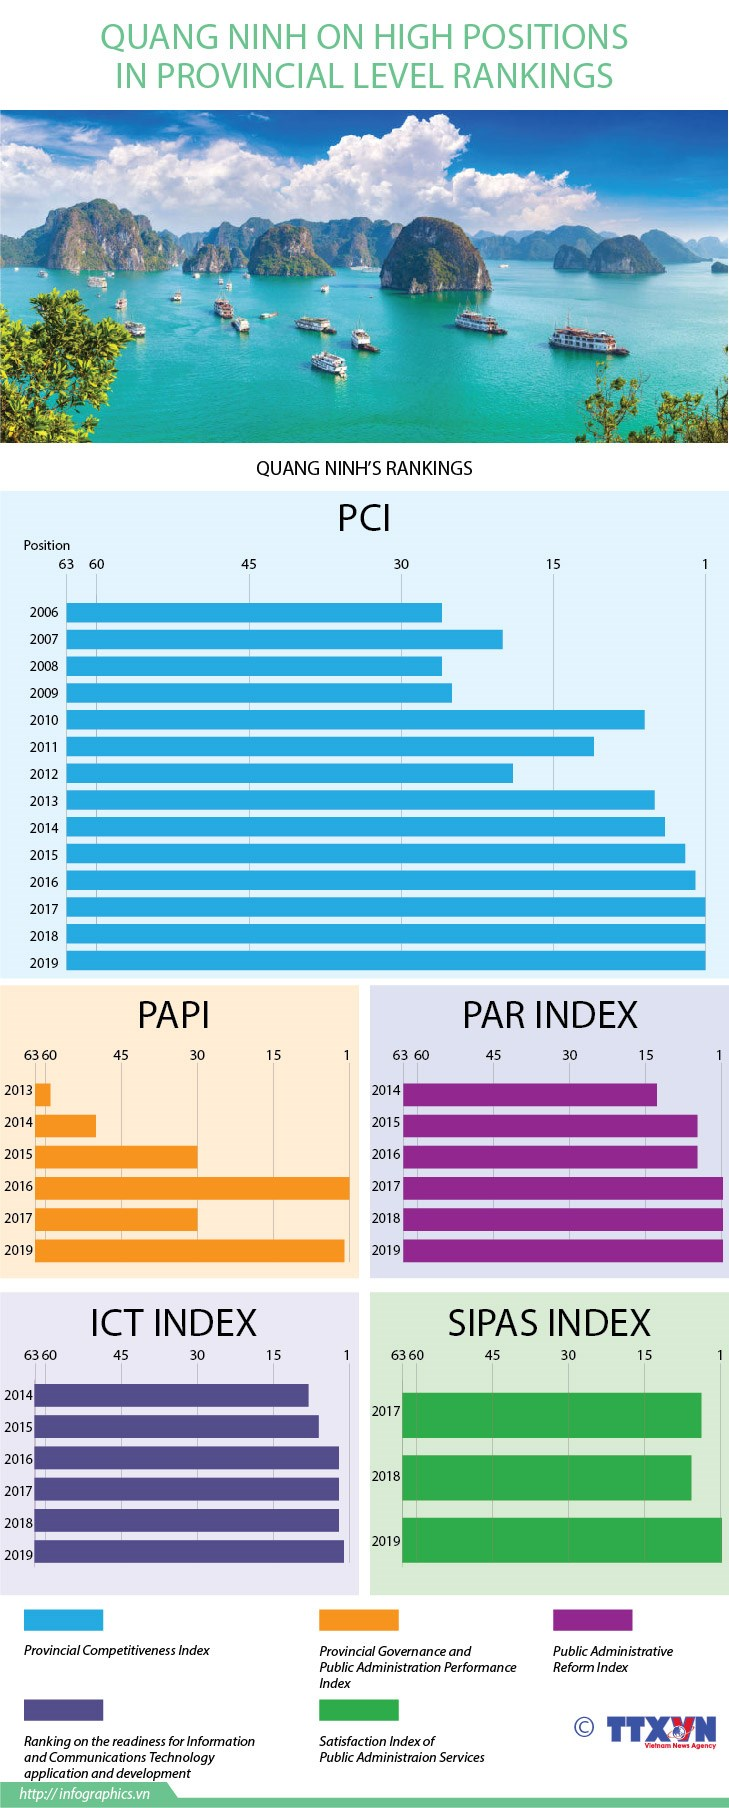 Quang Ninh on high positions in provincial level rankings hinh anh 1